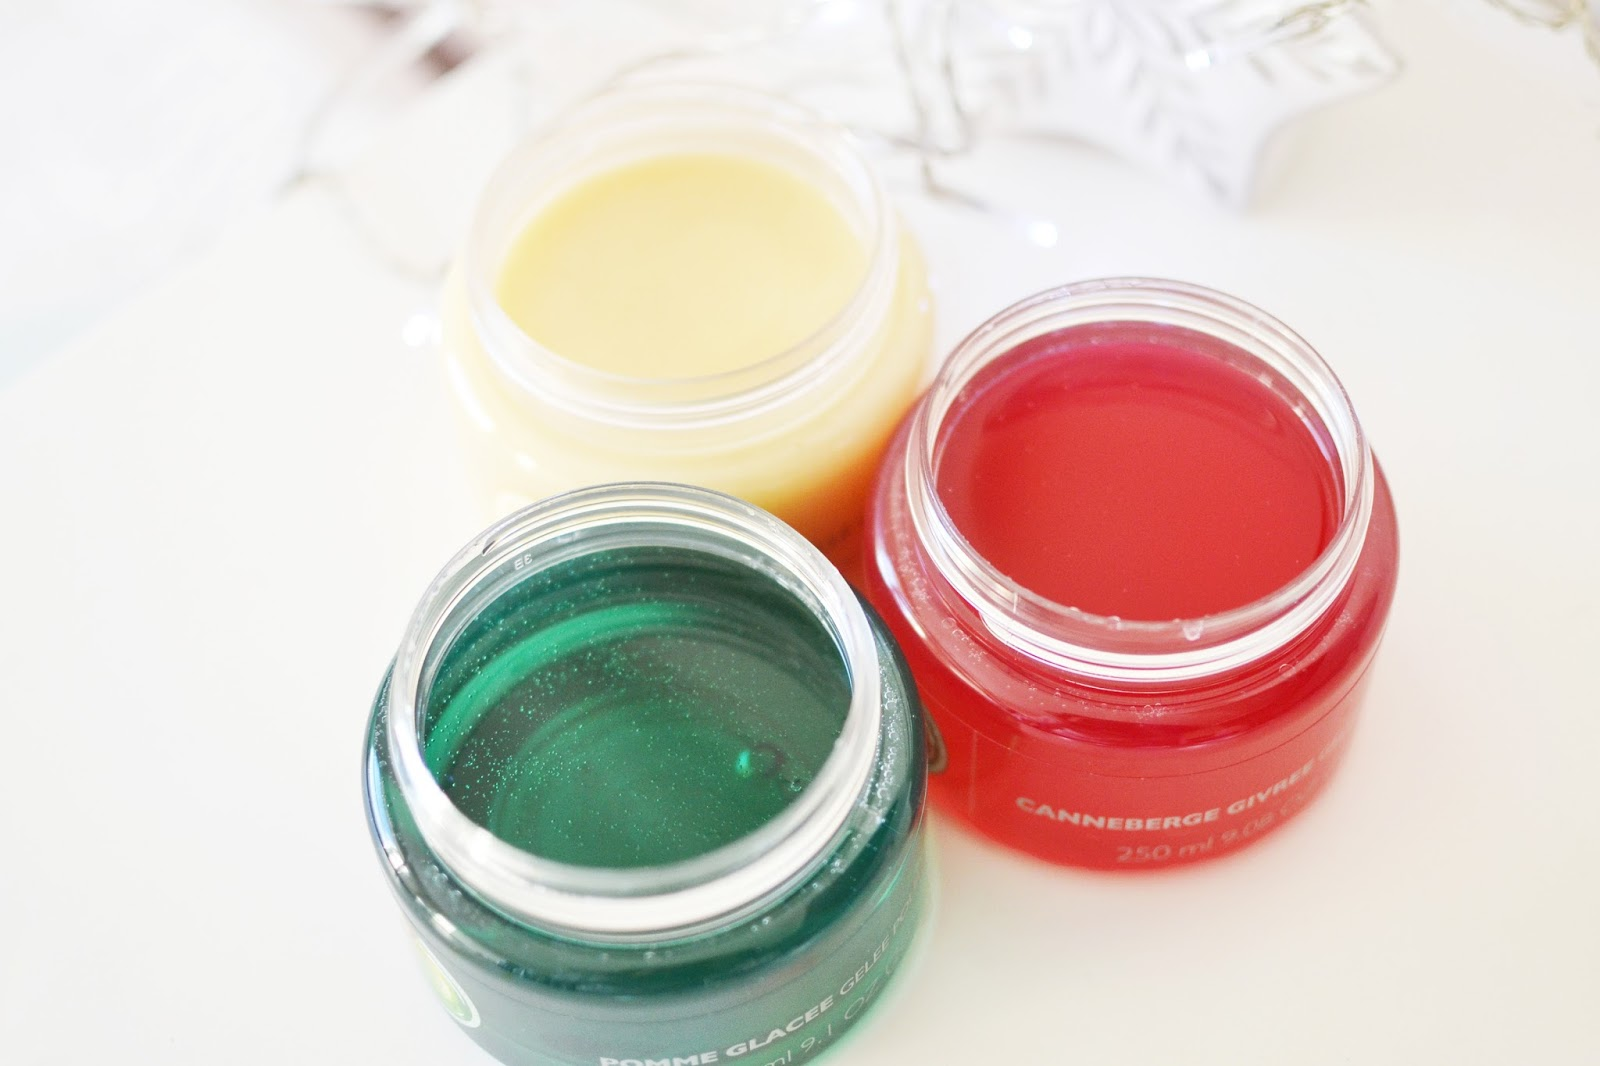 the body shop bath jelly, the body shop christmas gift